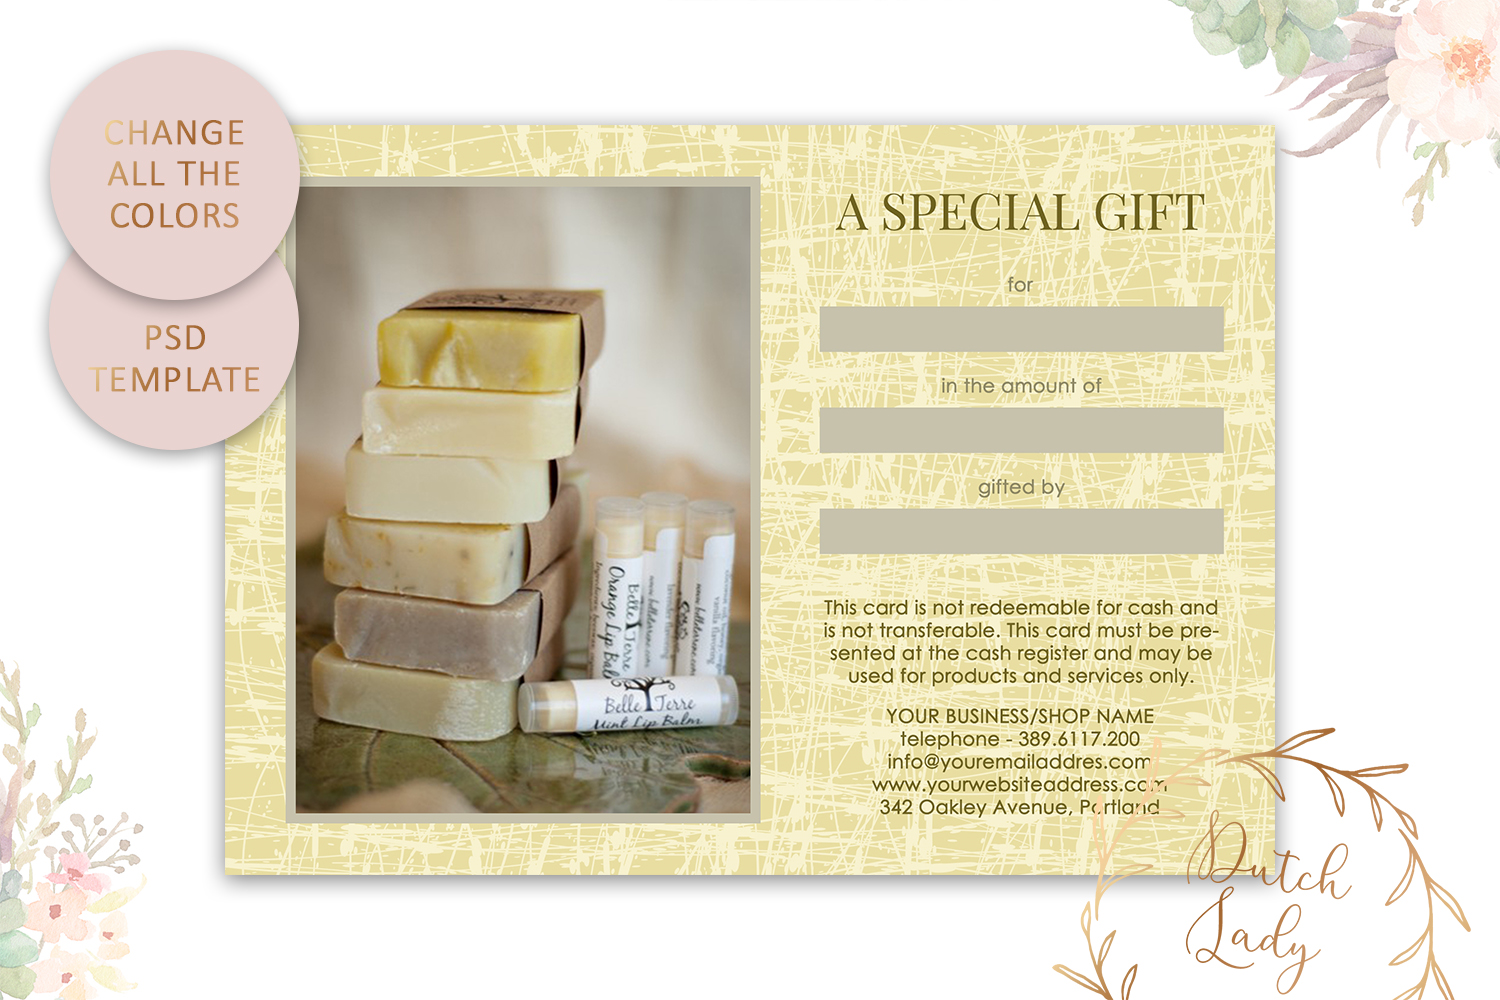 Photo Gift Card Template for Adobe Photoshop - #29 example image 5